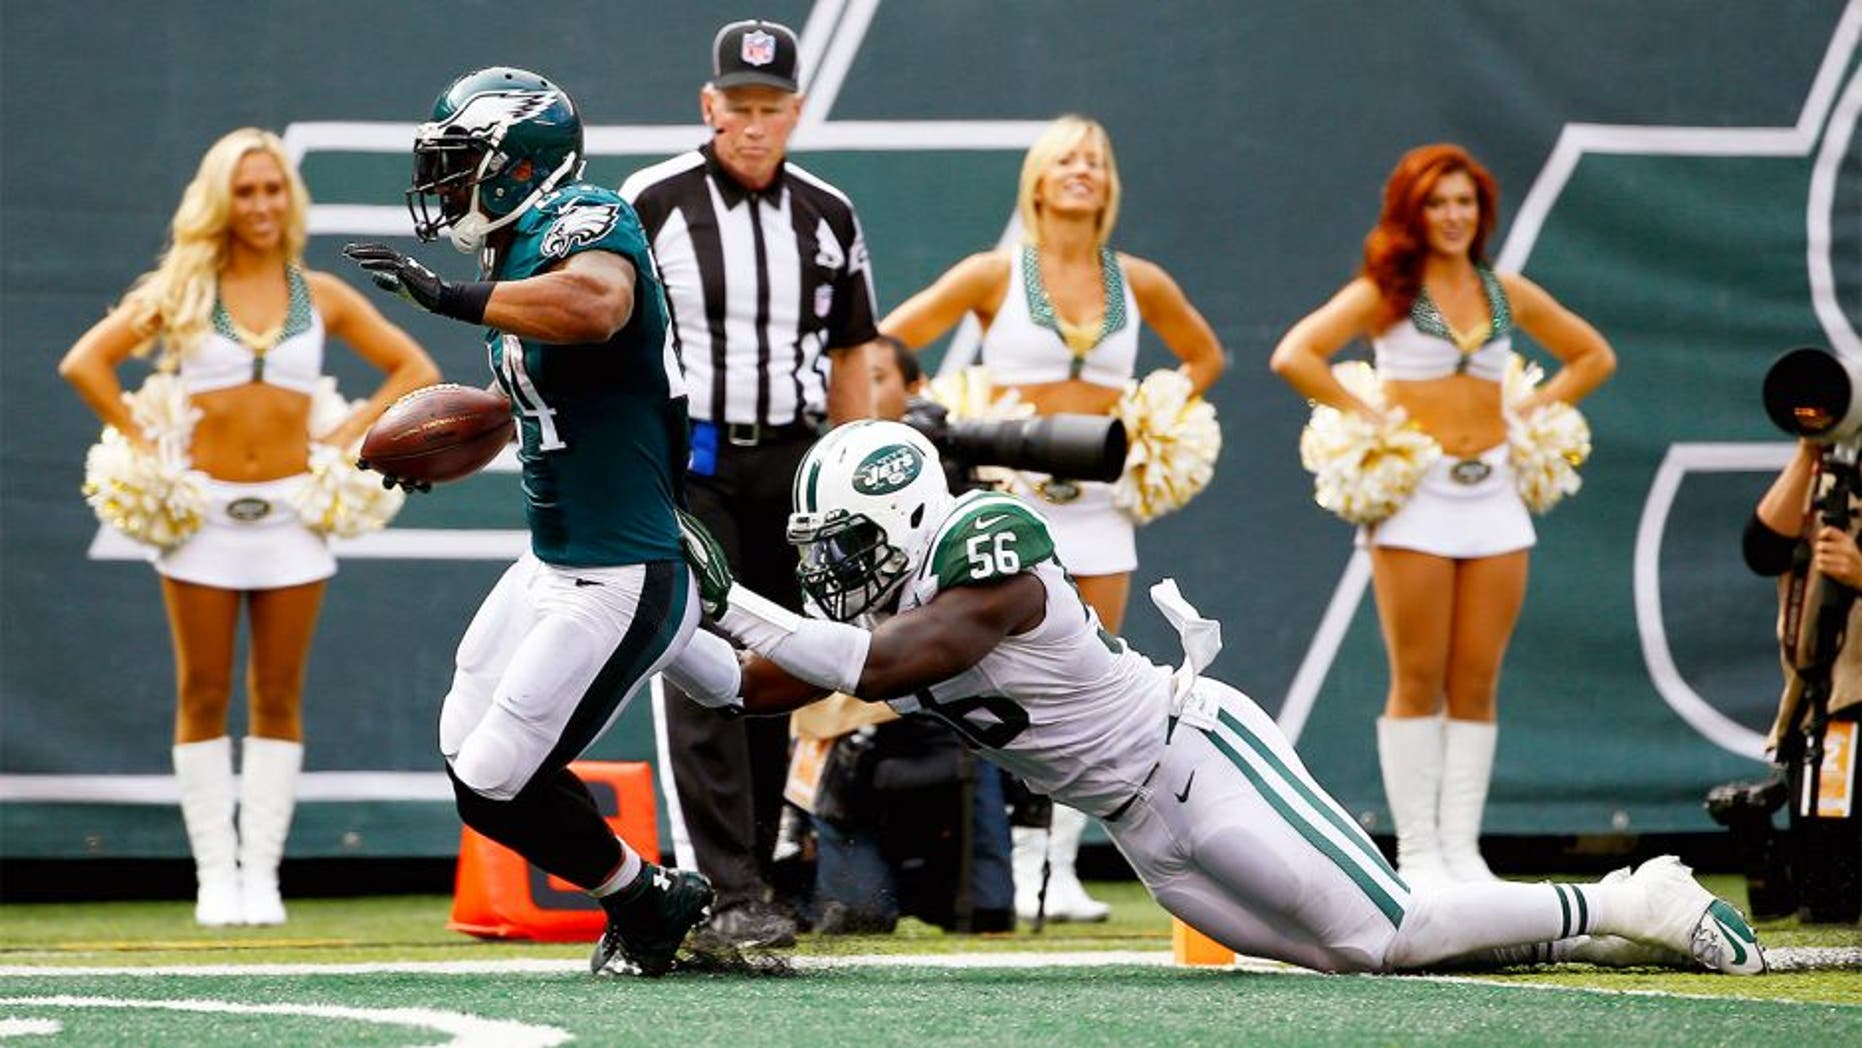 EAST RUTHERFORD, NJ - SEPTEMBER 27: Ryan Mathews #24 of the Philadelphia Eagles scores a touchdown in the second quarter as Demario Davis #56 of the New York Jets defends at MetLife Stadium on September 27, 2015 in East Rutherford, New Jersey. (Photo by Al Bello/Getty Images)